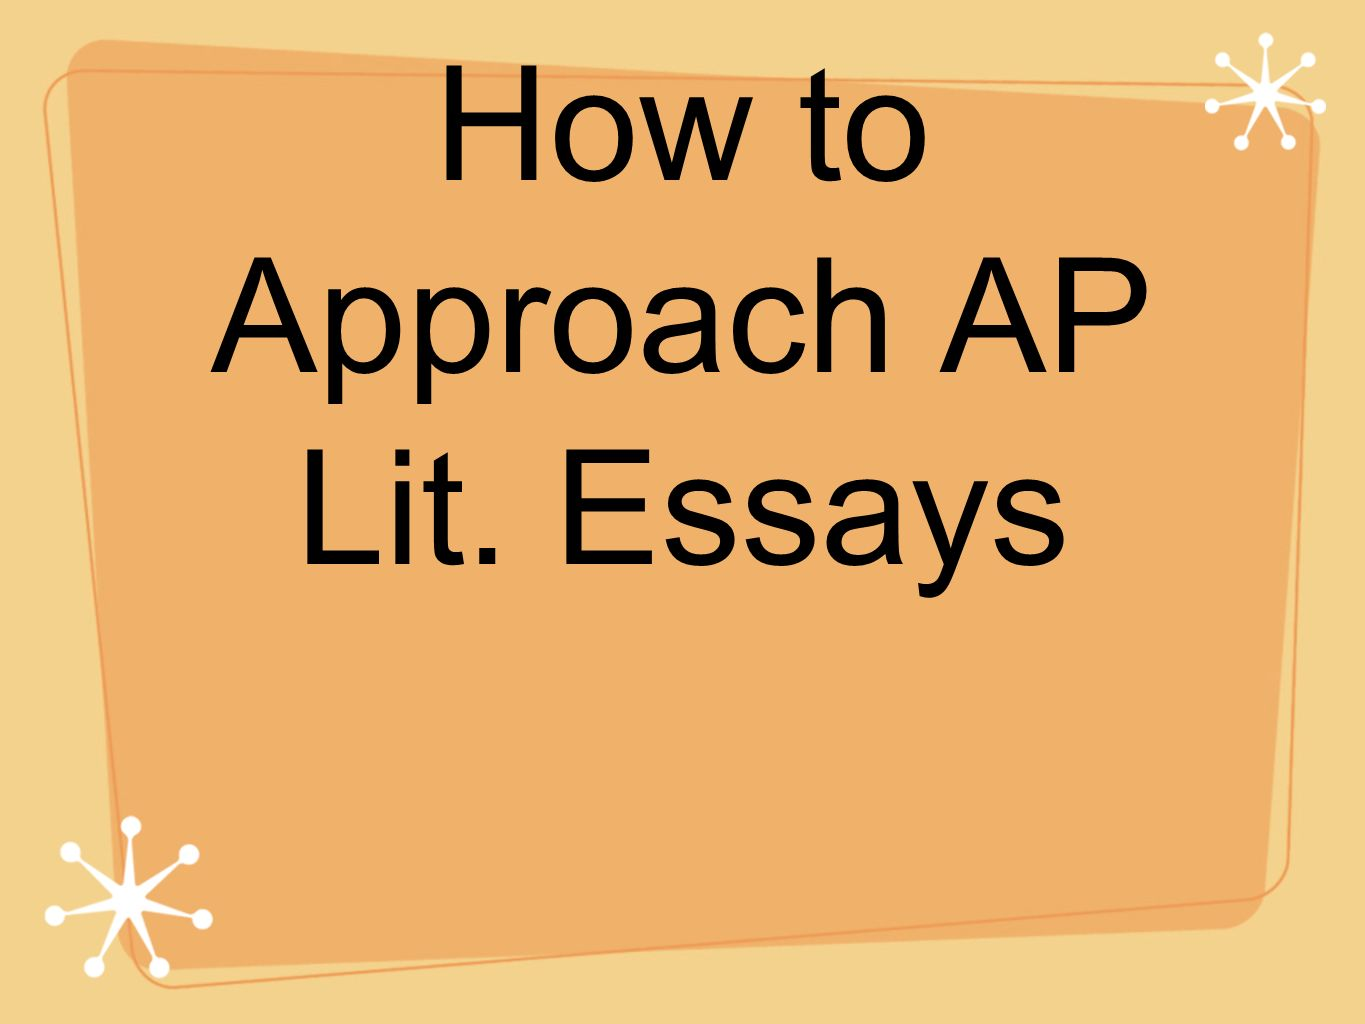 How to Approach AP Lit. Essays